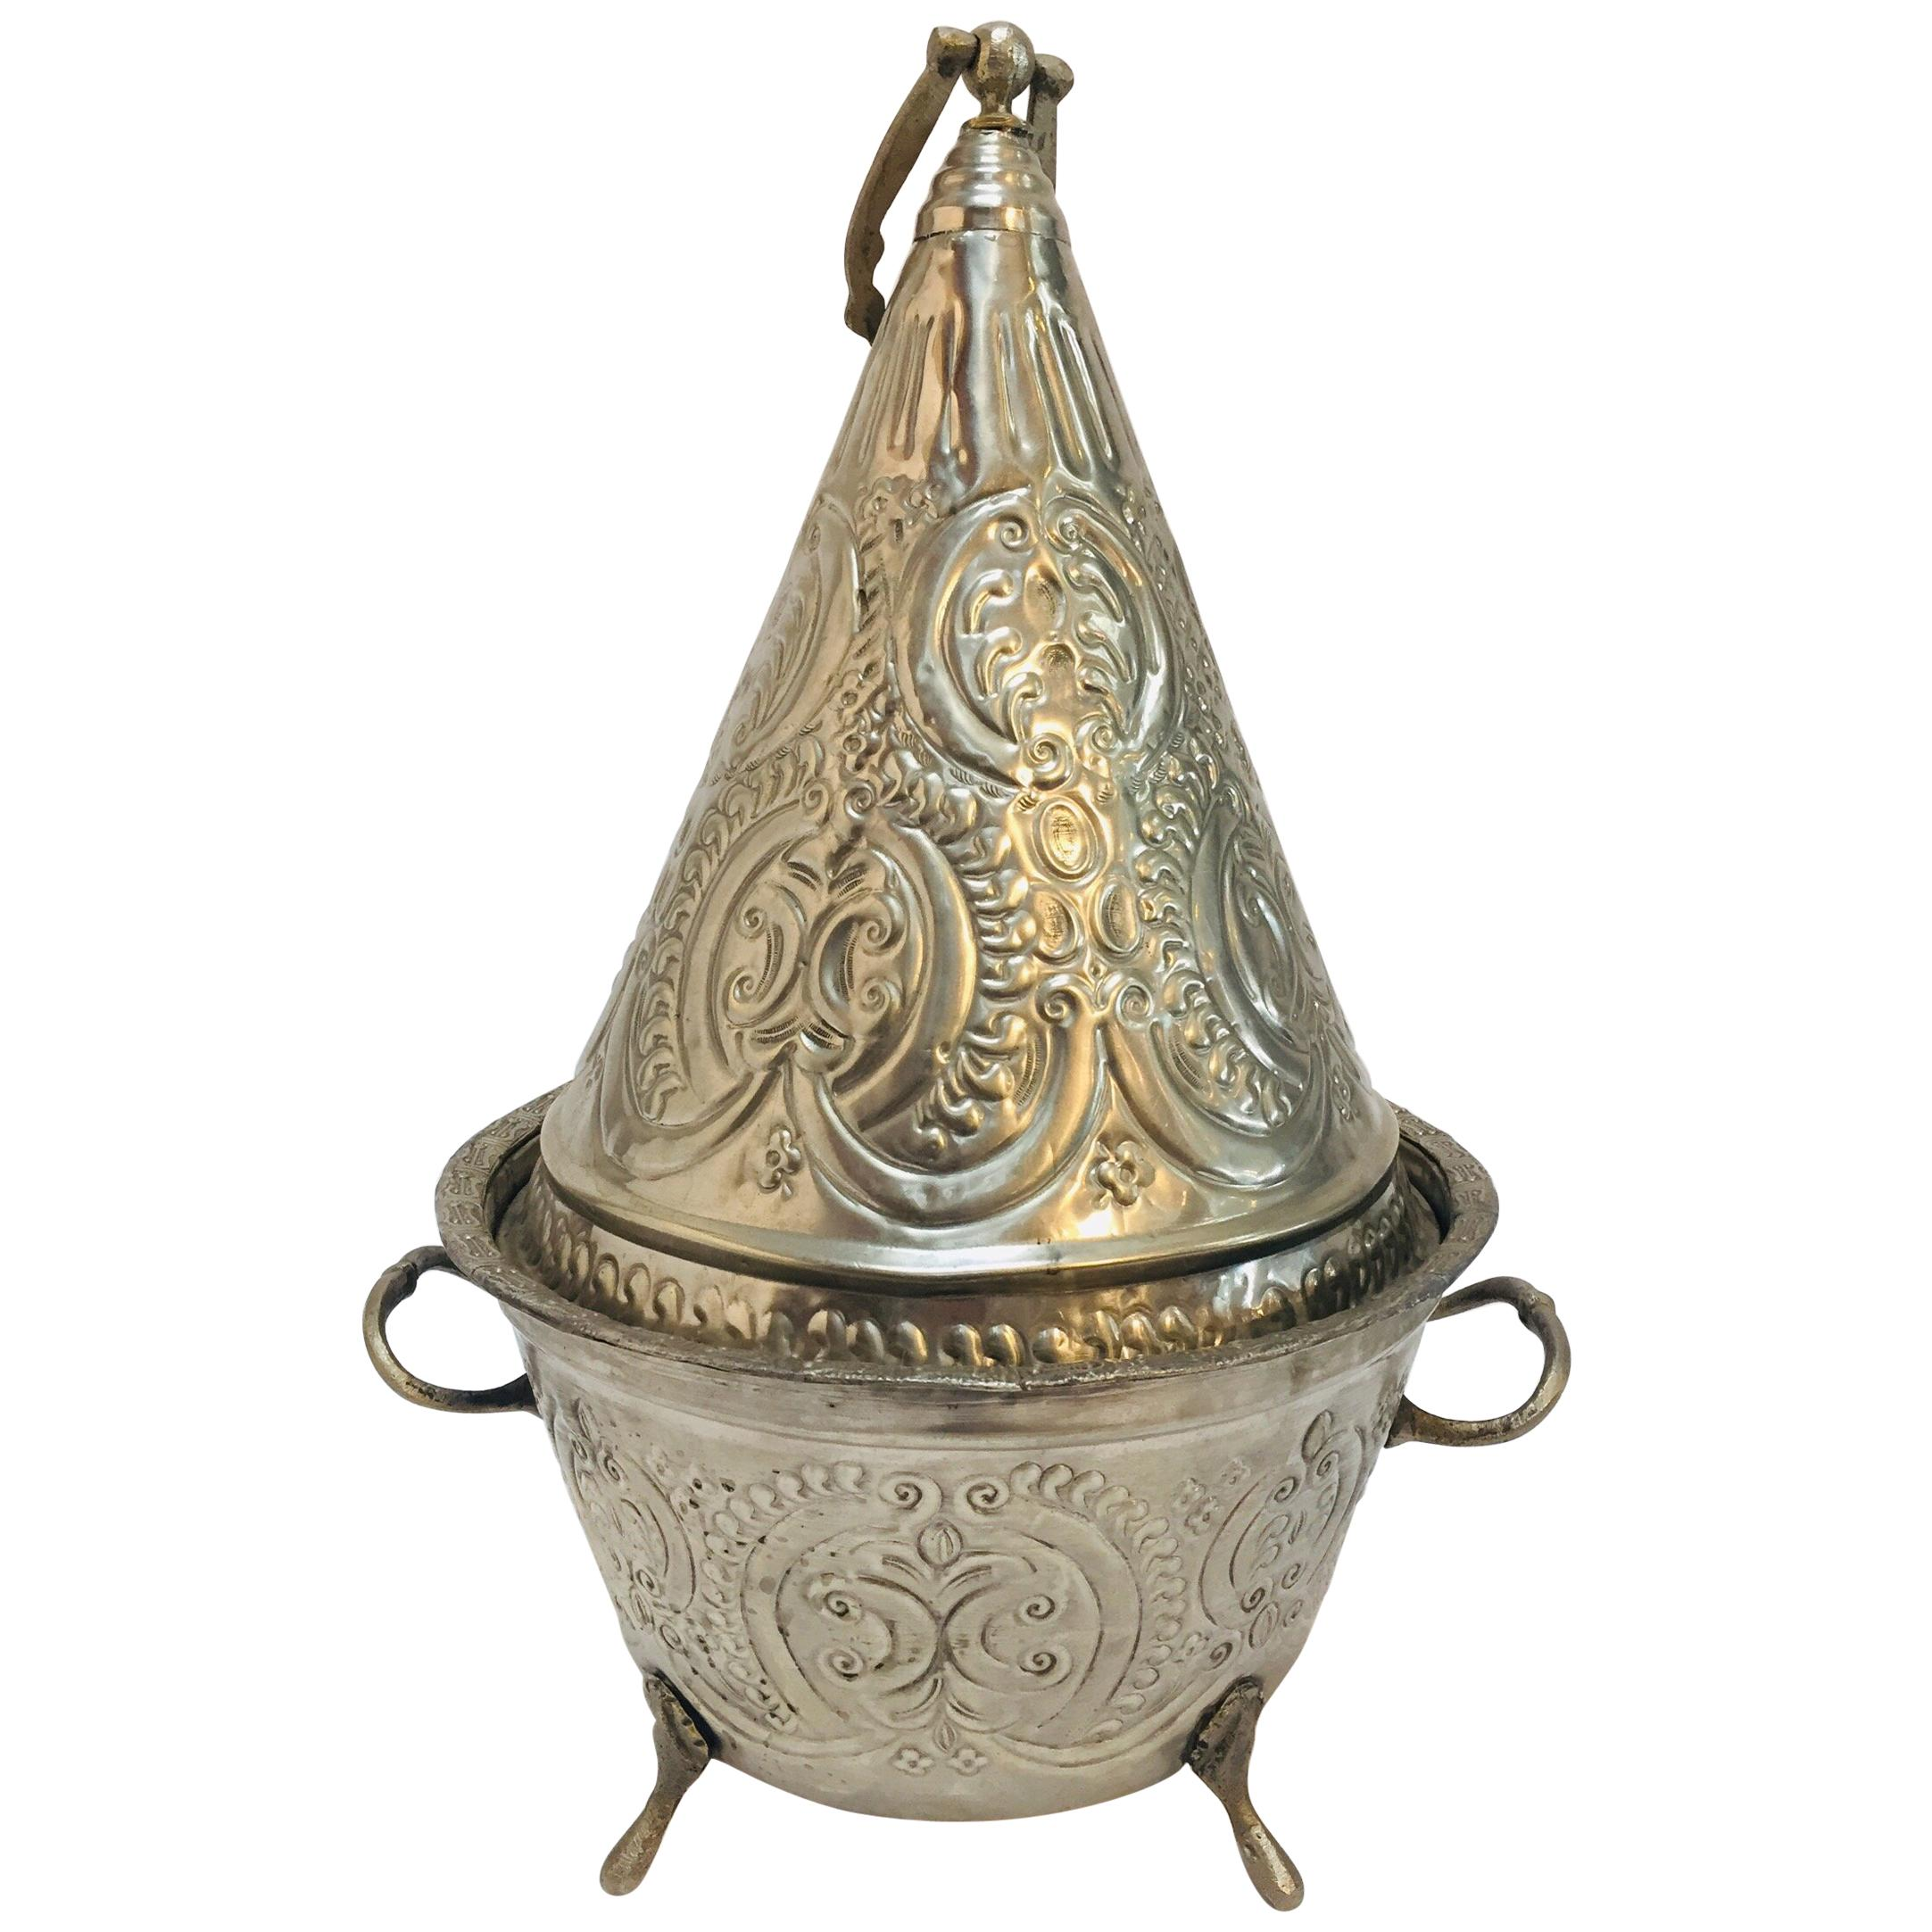 Moroccan Silver Repousse Plated Serving Dish Tajine with Cover